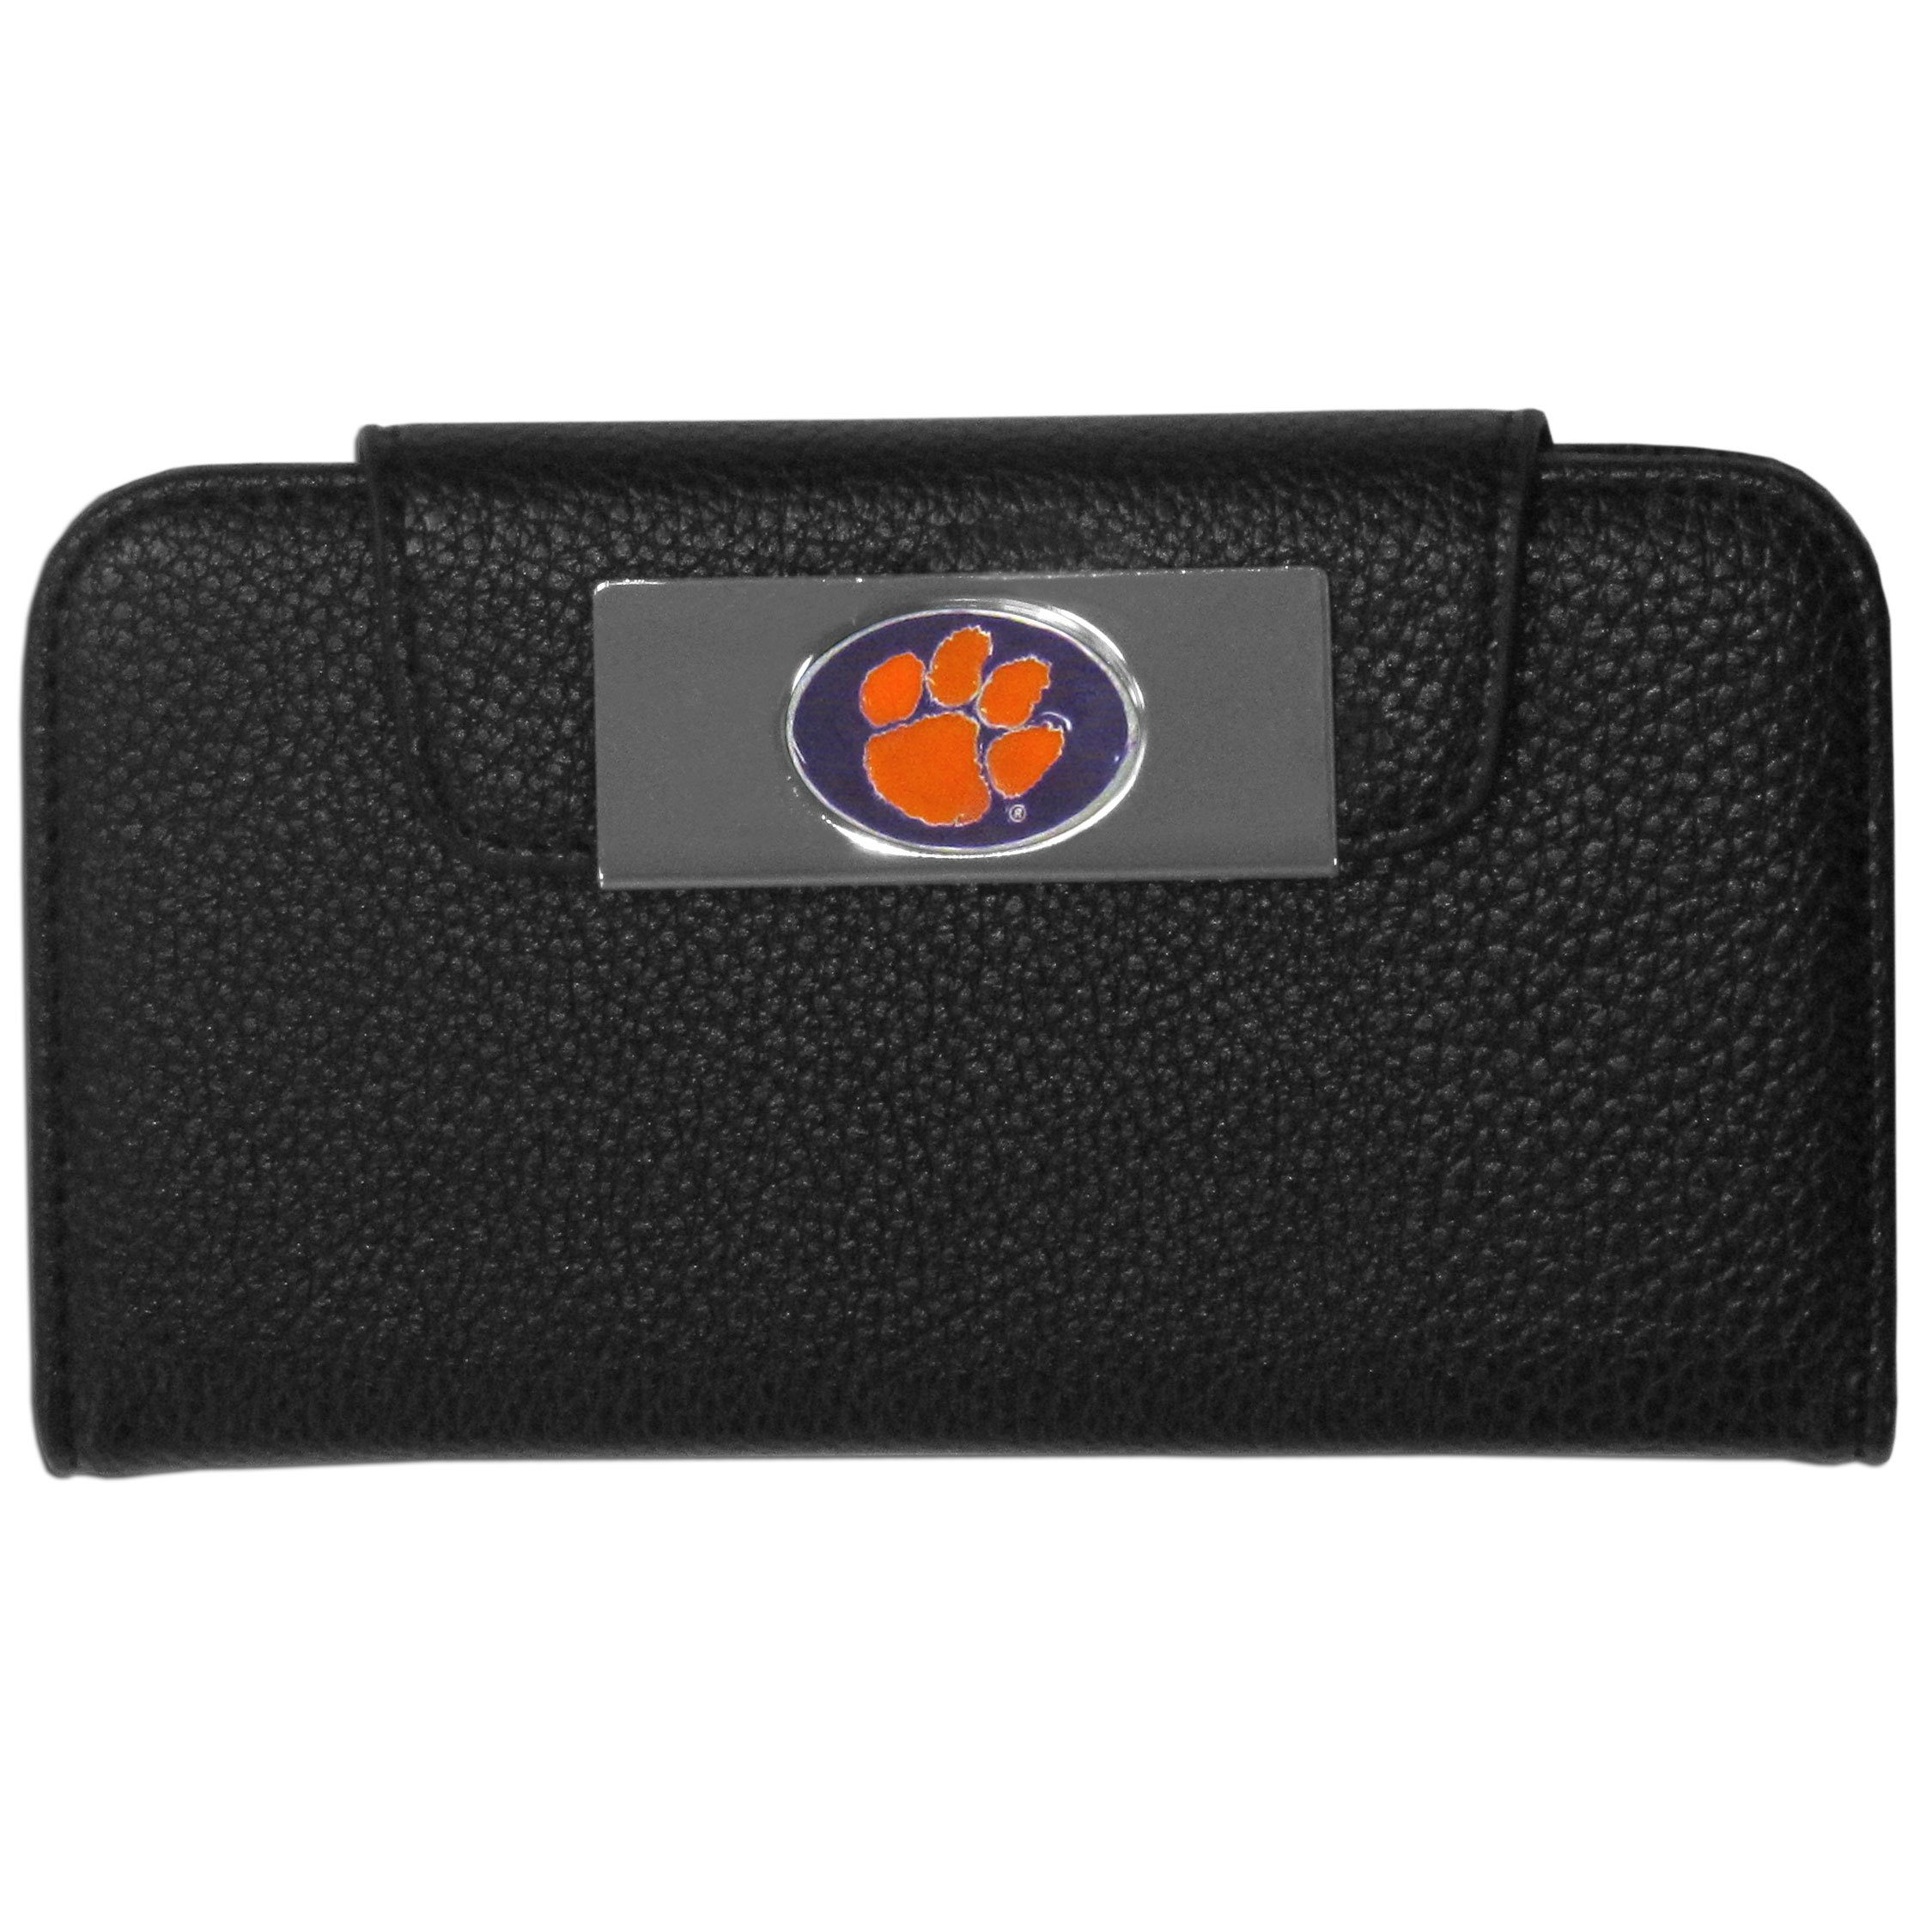 Clemson Tigers iPhone 5/5S Wallet Case - This new & wildly popular case is ideal for those who like to travel light! The stylish case has an inner hard shell that securely holds your phone while allowing complete access to the phone's functionality. The flip cover has slots for credit cards, business cards and identification. The magnetic flip cover has a metal Clemson Tigers emblem on a high polish chrome backing. Fits the iPhone 5/5S